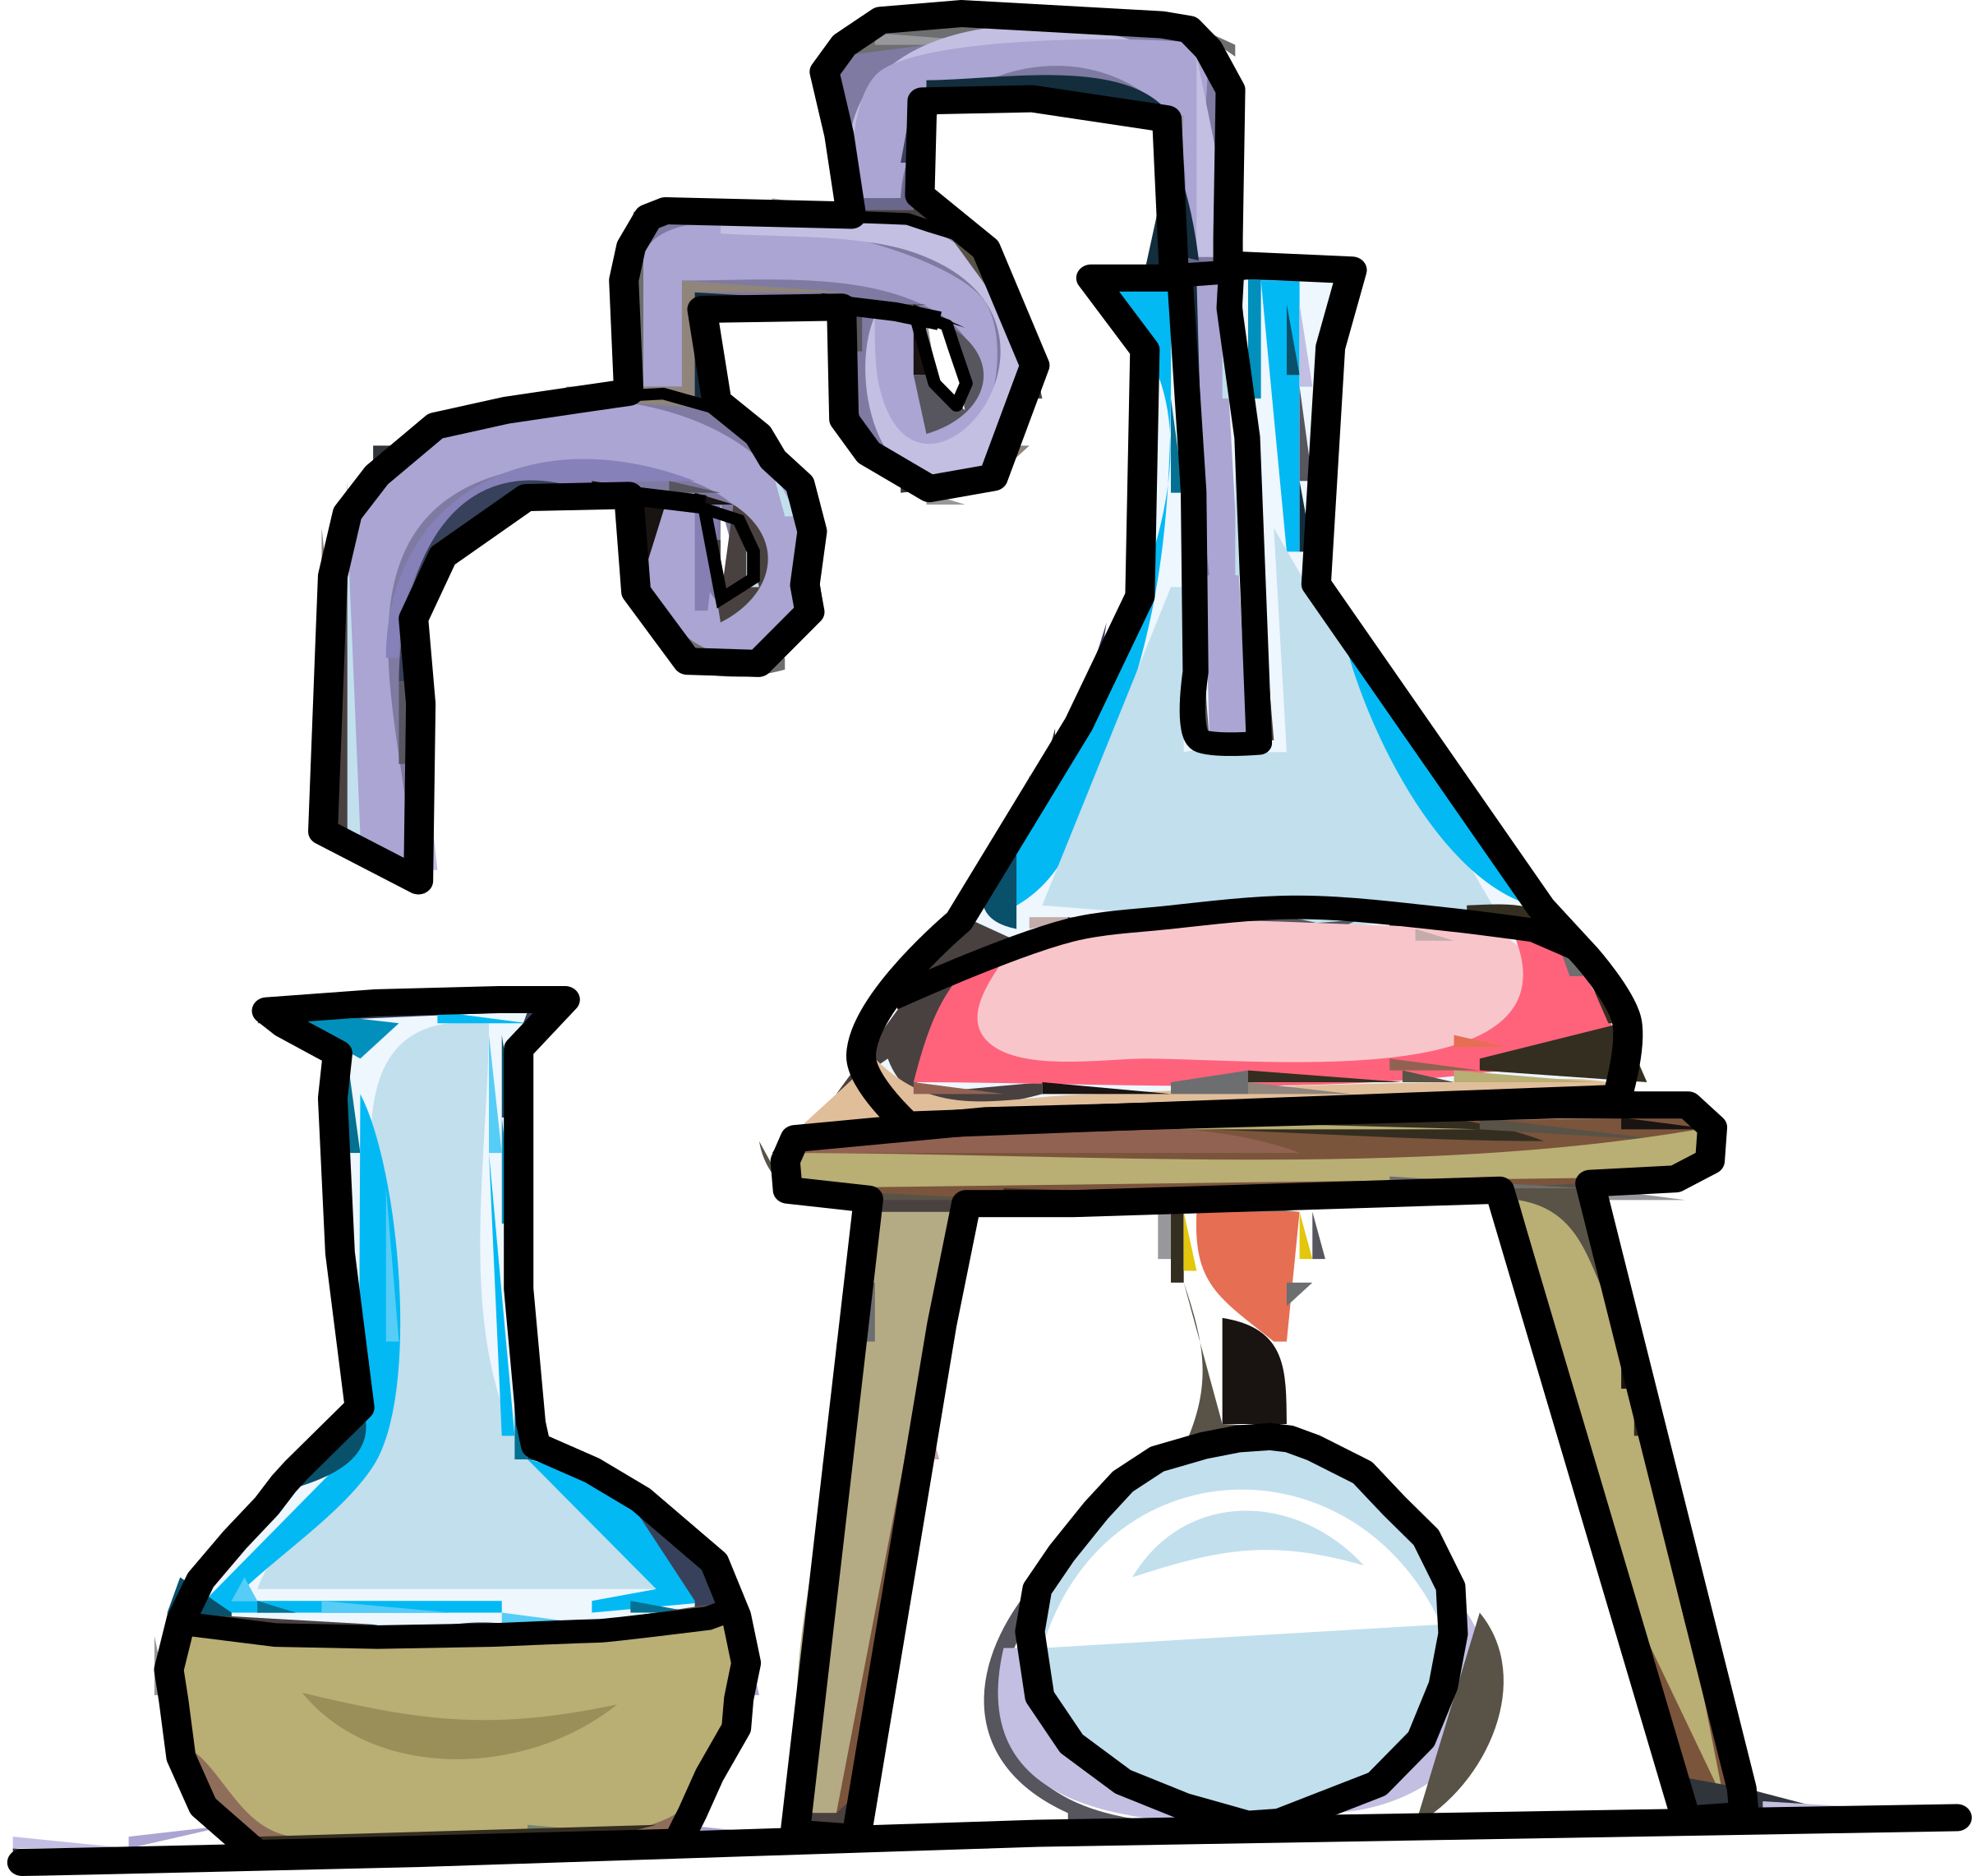 Scientist clipart lab testing, Scientist lab testing ...